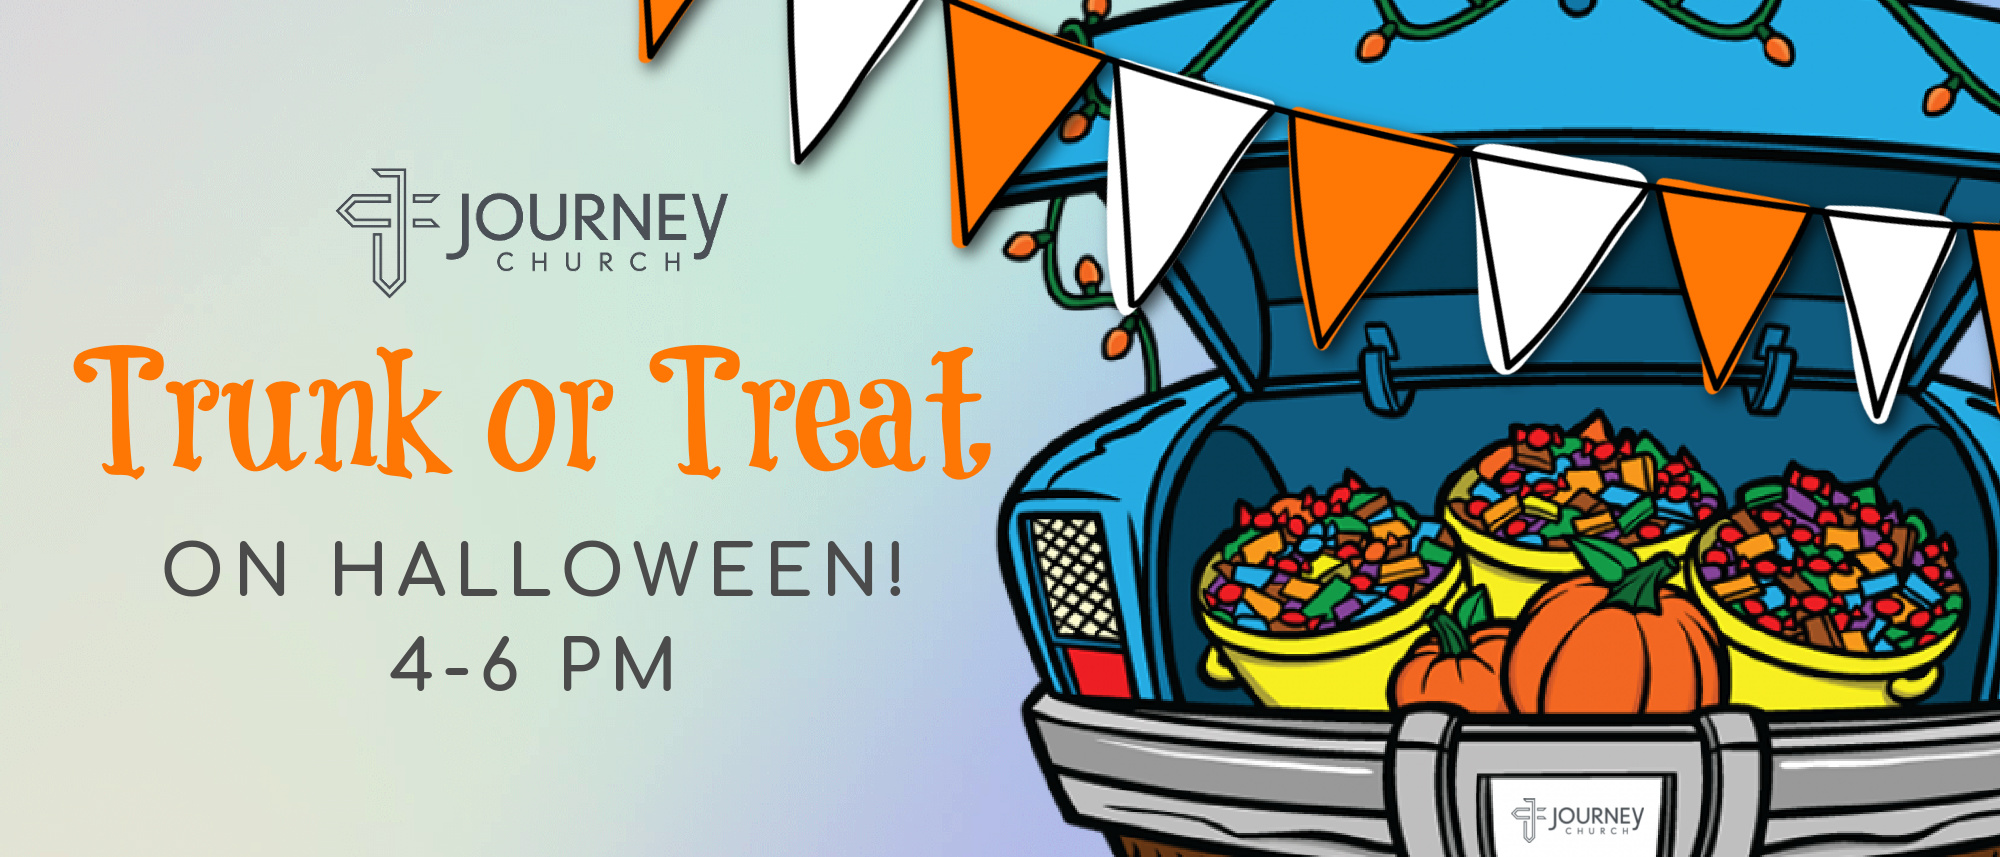 Stop by Journey Church on Halloween from 4-6 for our annual Trunk or Treat event! Free food and candy!